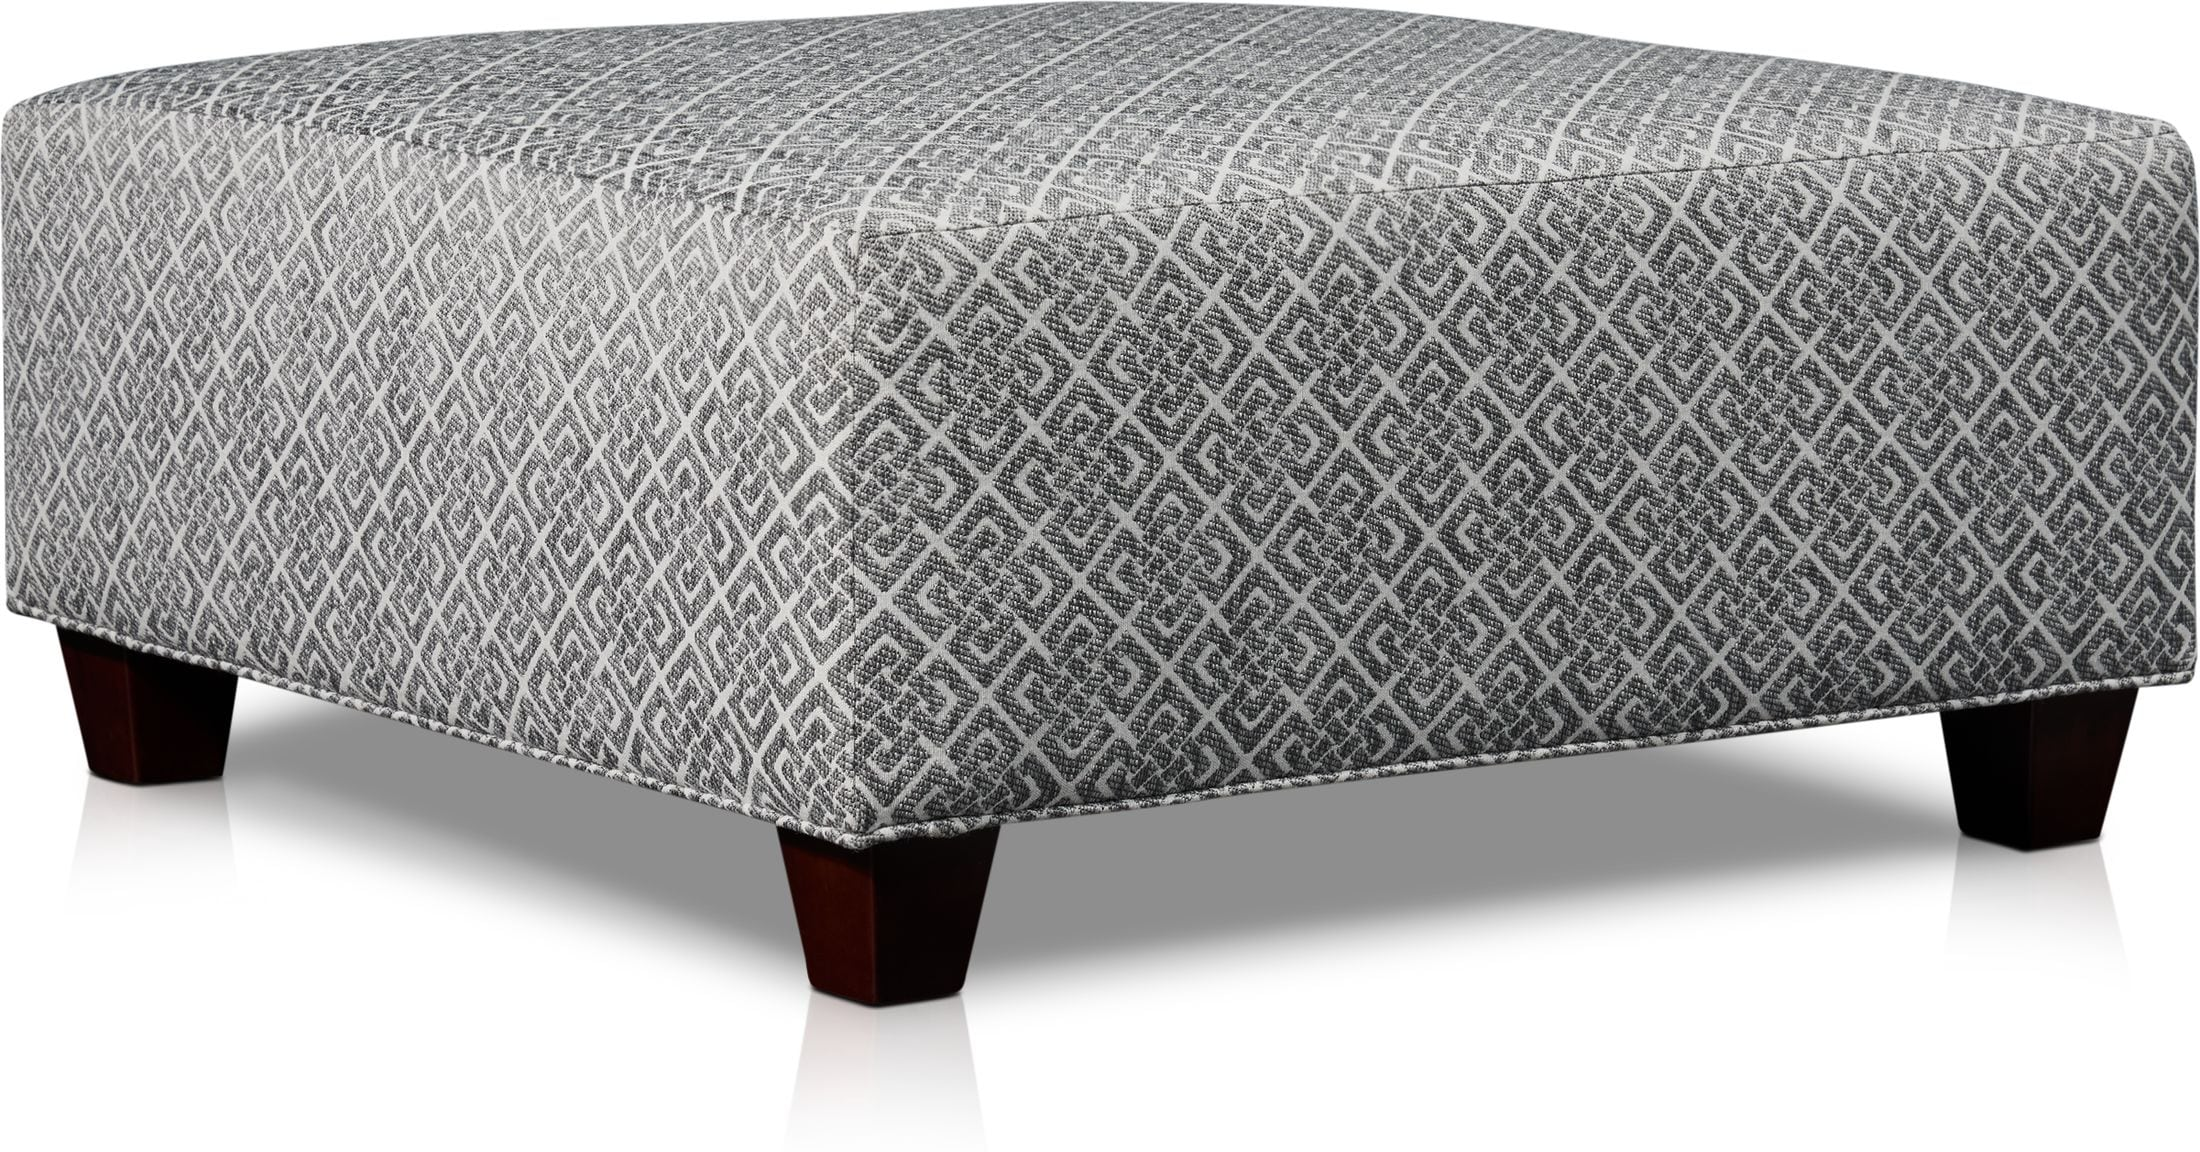 Living Room Furniture - Camila Ottoman